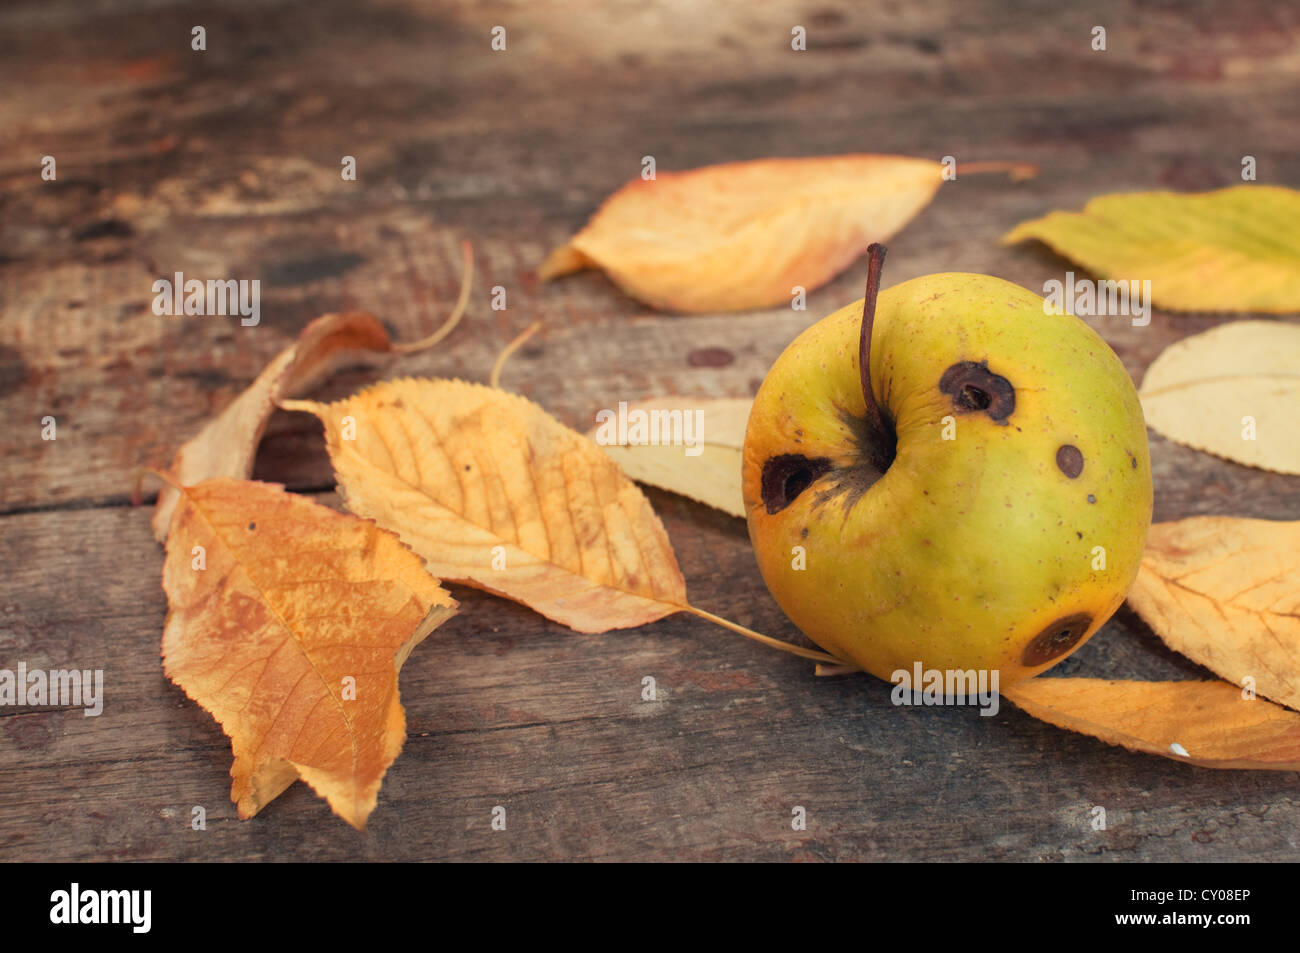 Autumn leaves fallen on the old wooden table and a rotten apple Stock Photo